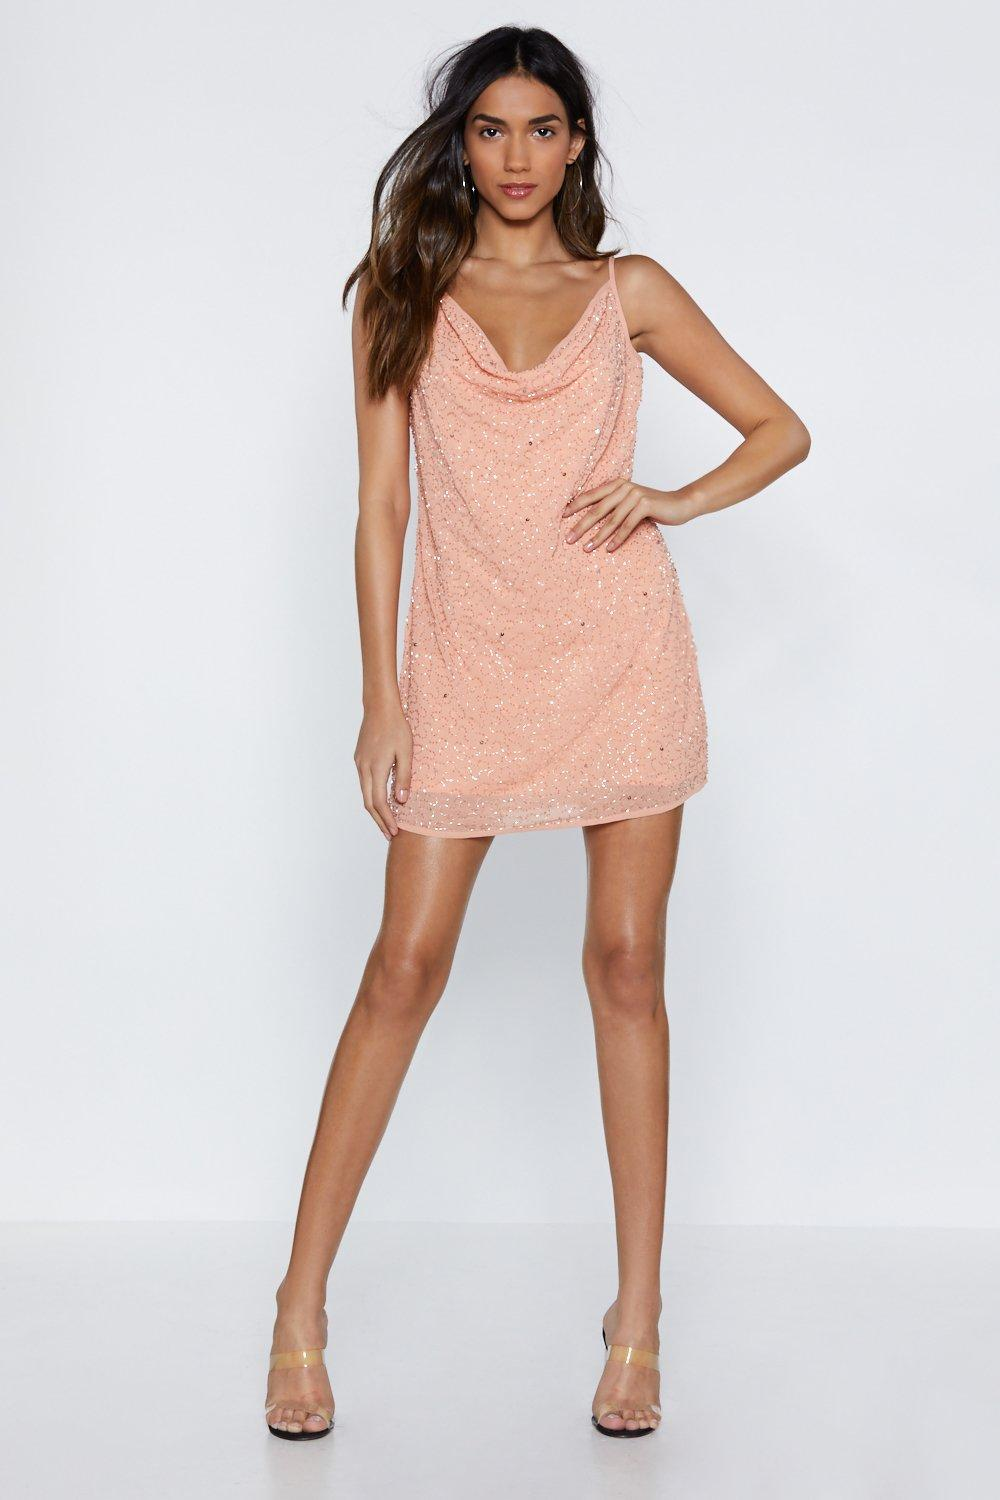 c6f1bccbf8 Beads Me Embellished Mini Dress | Shop Clothes at Nasty Gal!